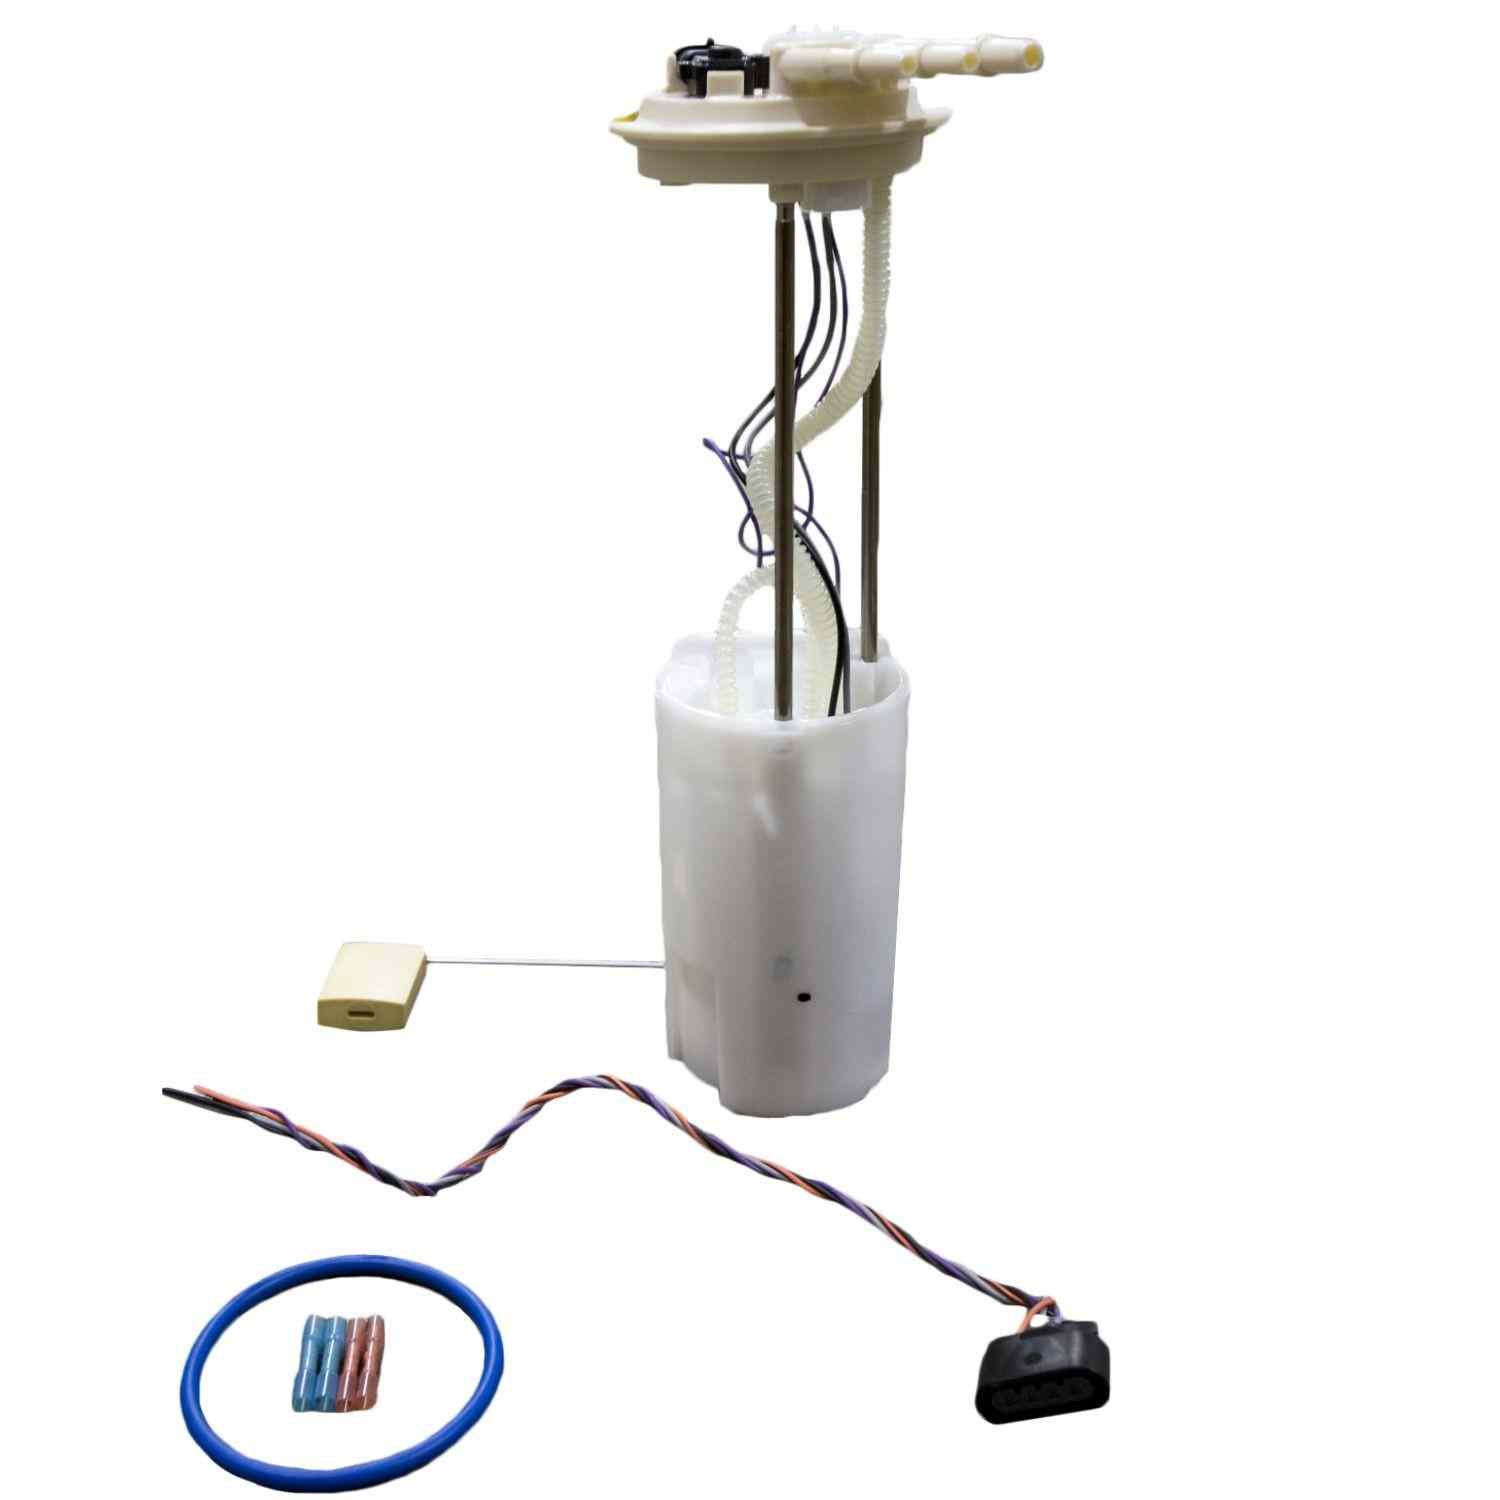 MAGNETI MARELLI OFFERED BY MOPAR - Fuel Pump Module Assembly - MGM 1AMFP00200